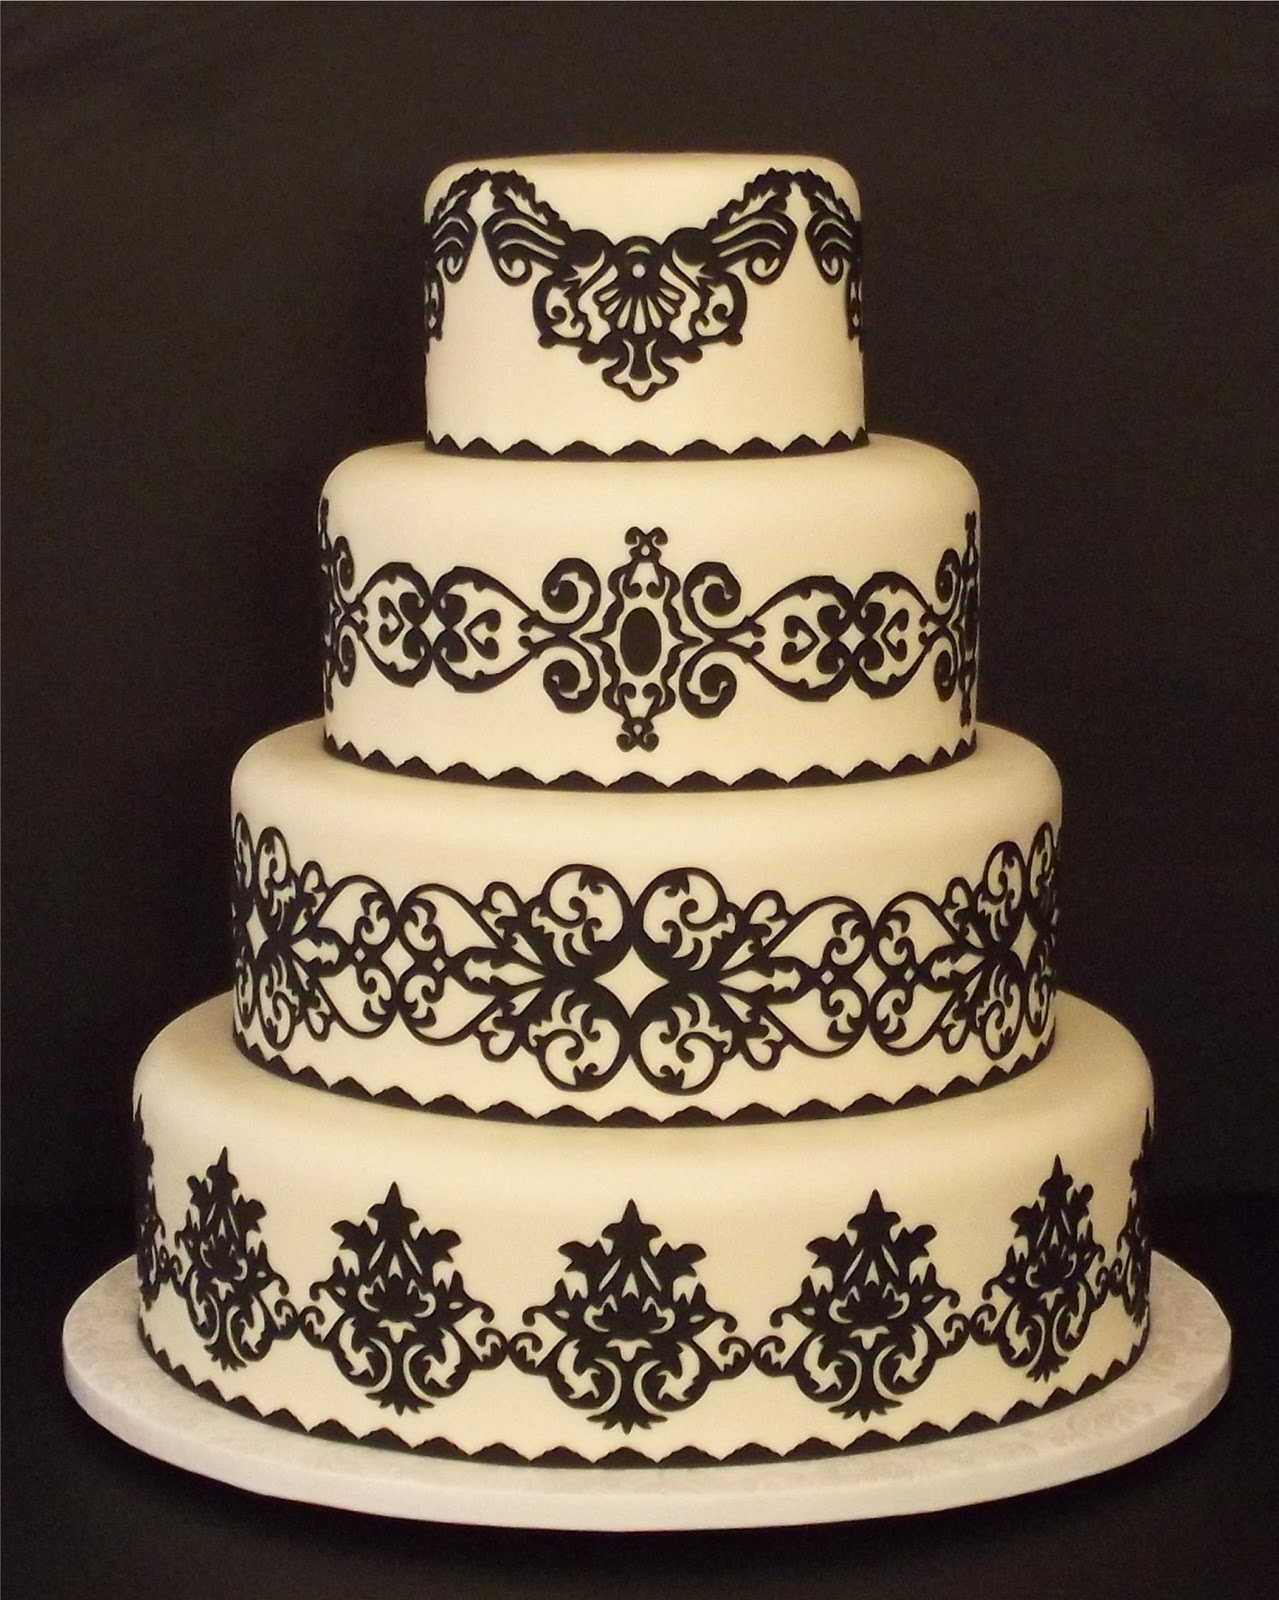 Wedding Cake Design Patterns : Creative Designs For Cakes: Pre-Cut Wedding Cake Designs